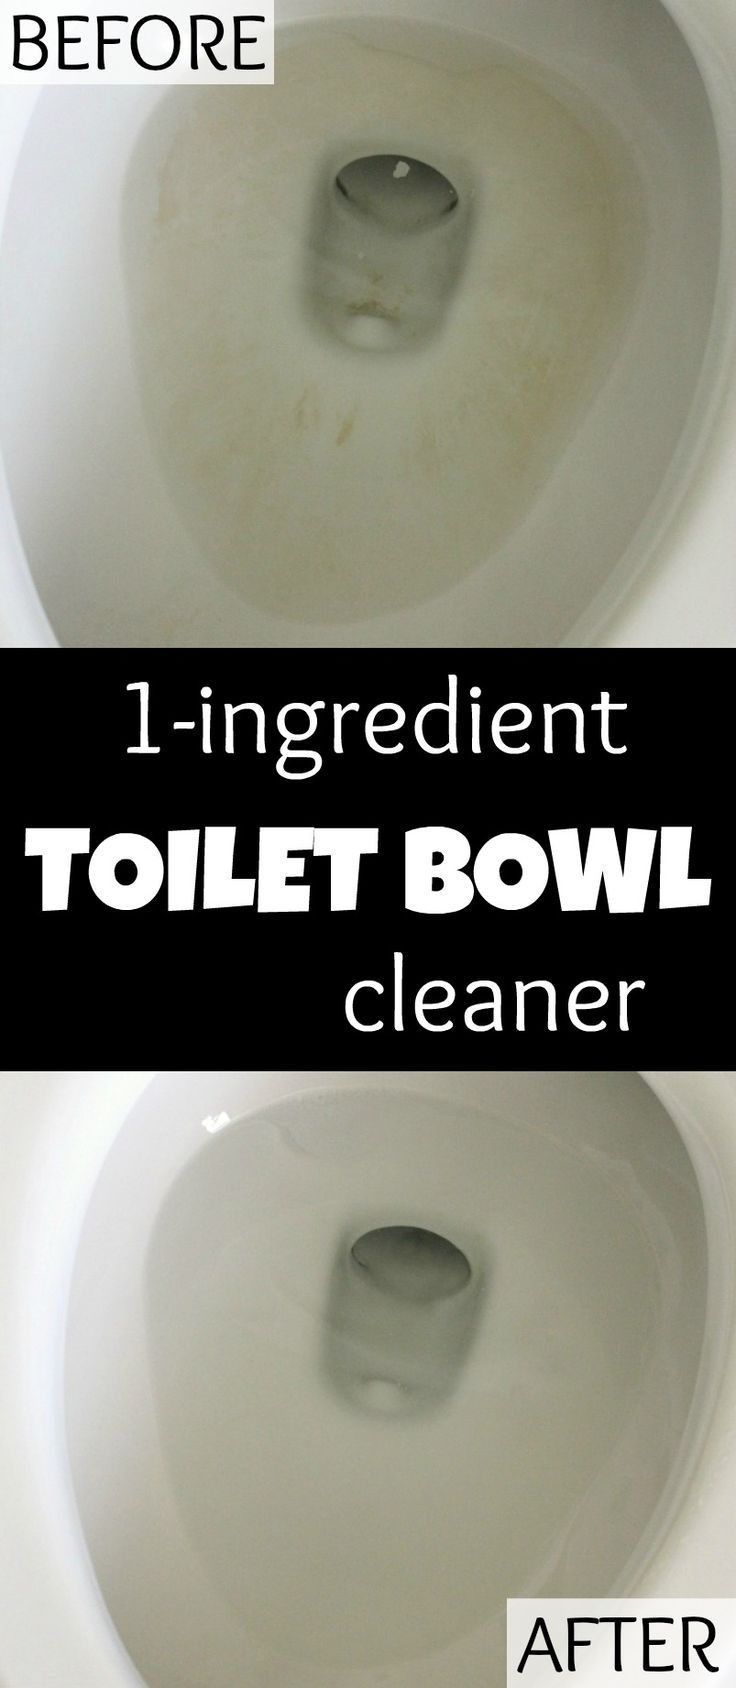 Ingredient Toilet Bowl Cleaner Clean toilets Toilet bowl and Toilet